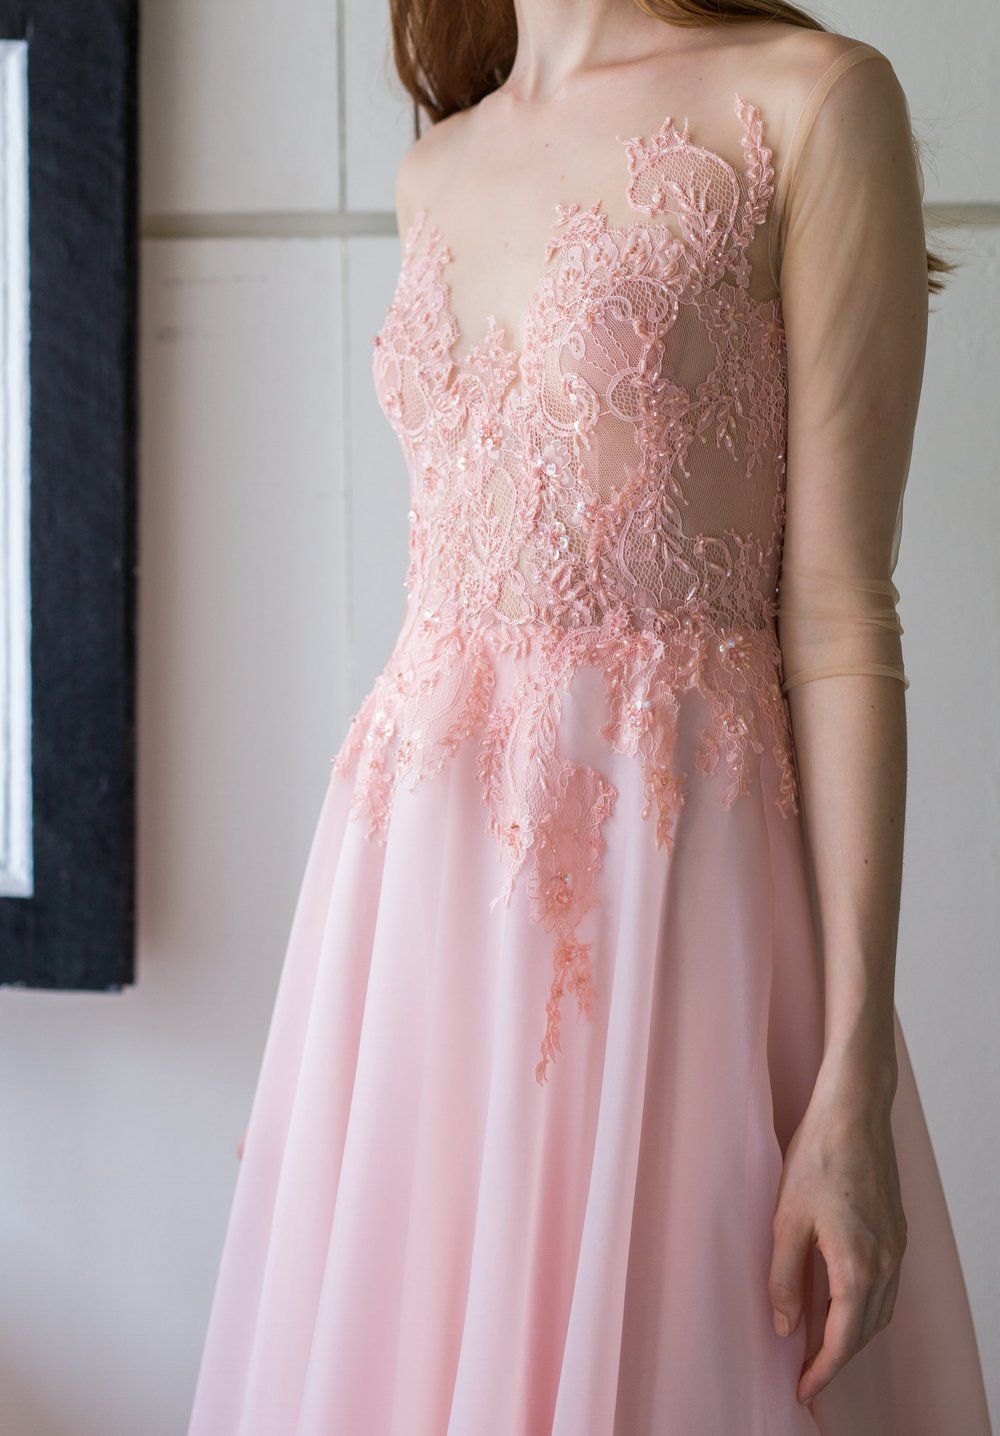 An illusion lace-top dress lined with Chantilly lace and layered with coral monochrome beads.